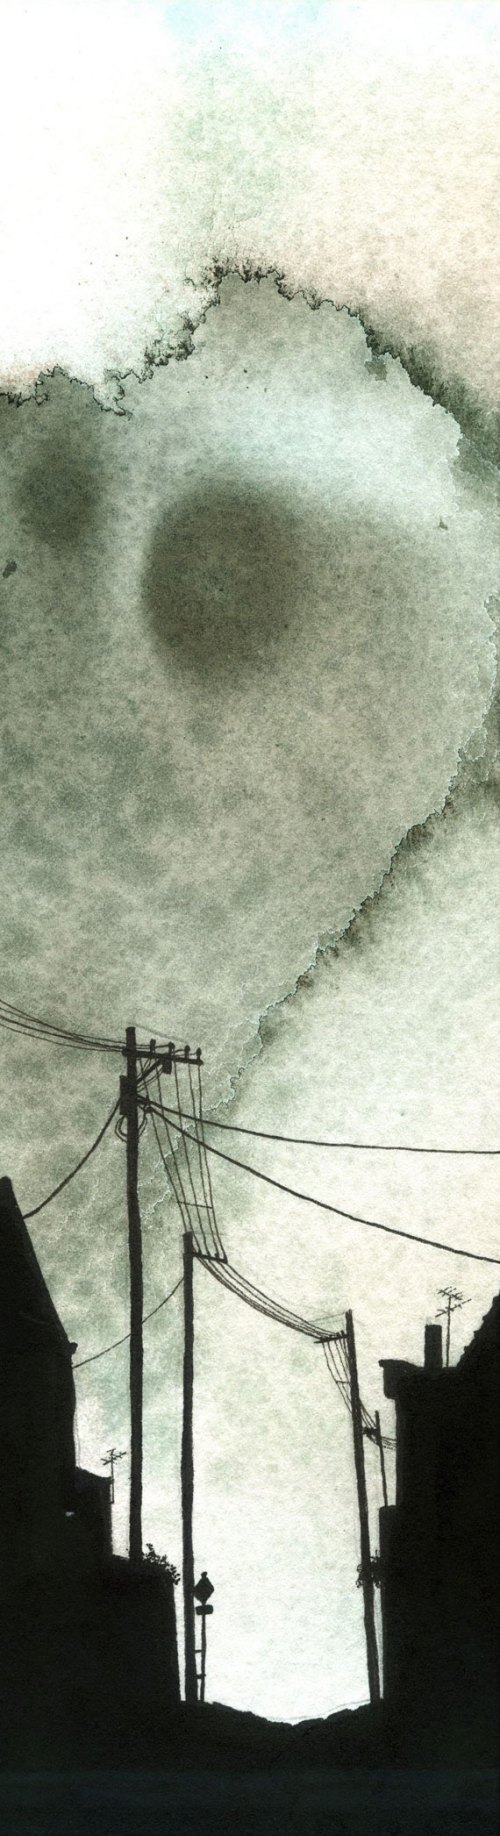 Kylie Blackley_See-Sun-Think-Shadow_Etching